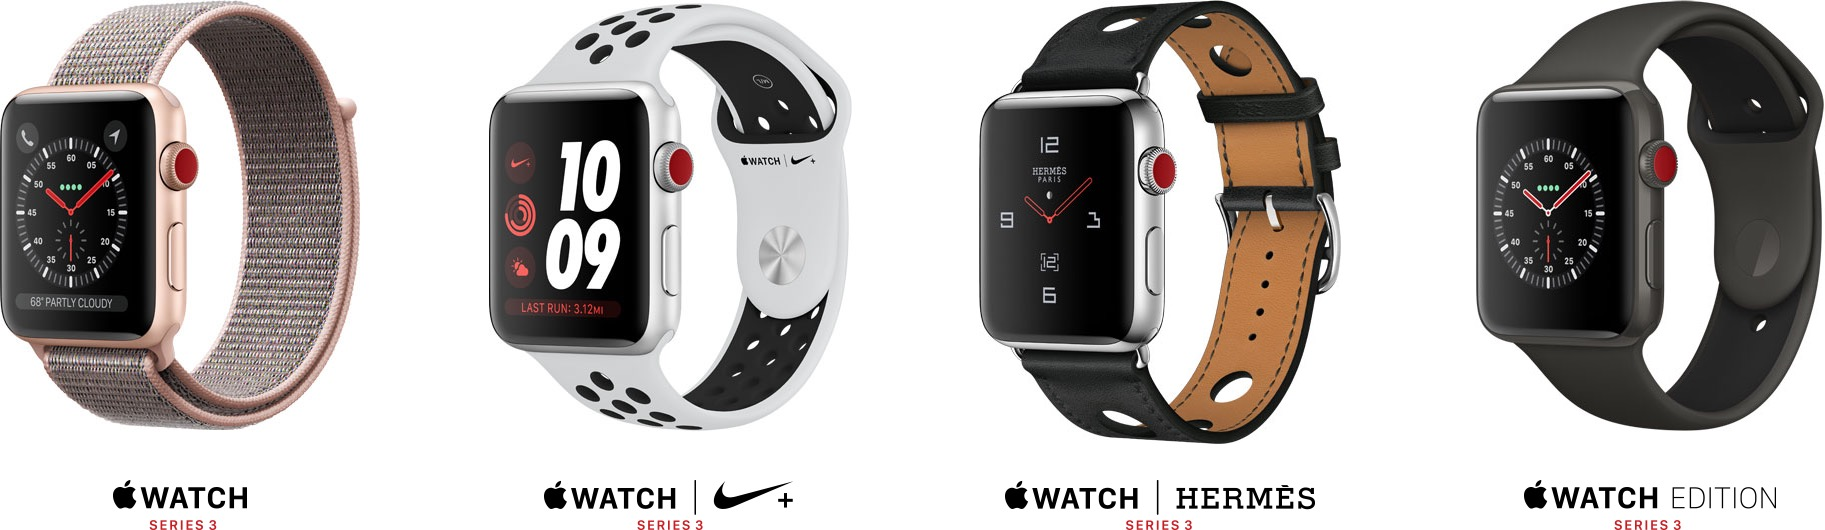 Modelos de Apple Watch Series 3 (GPS + Cellular)